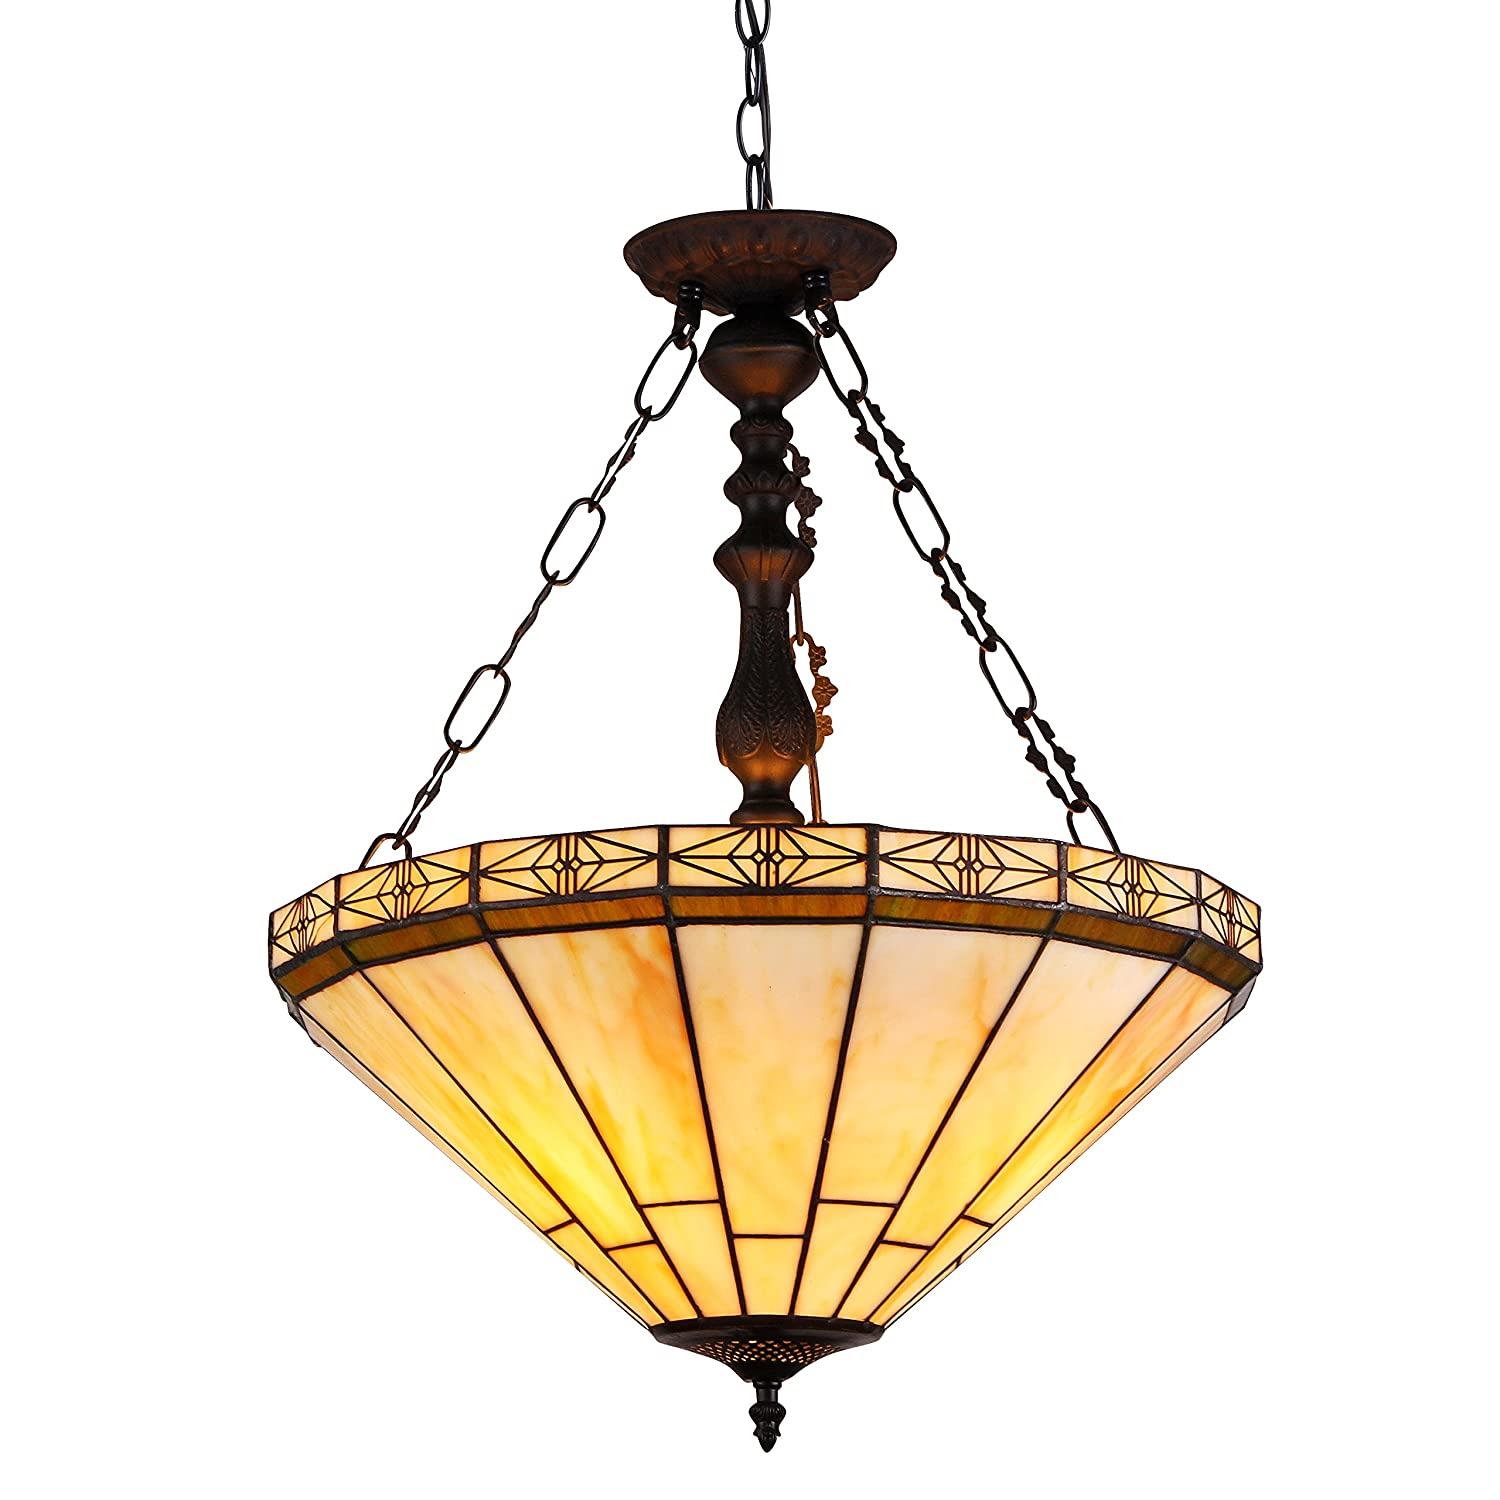 "Chloe Lighting CH31315MI18-UH2 Belle Tiffany-Style 2 Light Mission Inverted Ceiling Pendant Fixture with Shade, 23.4 x 18.3 x 18.3"", Multicolor"